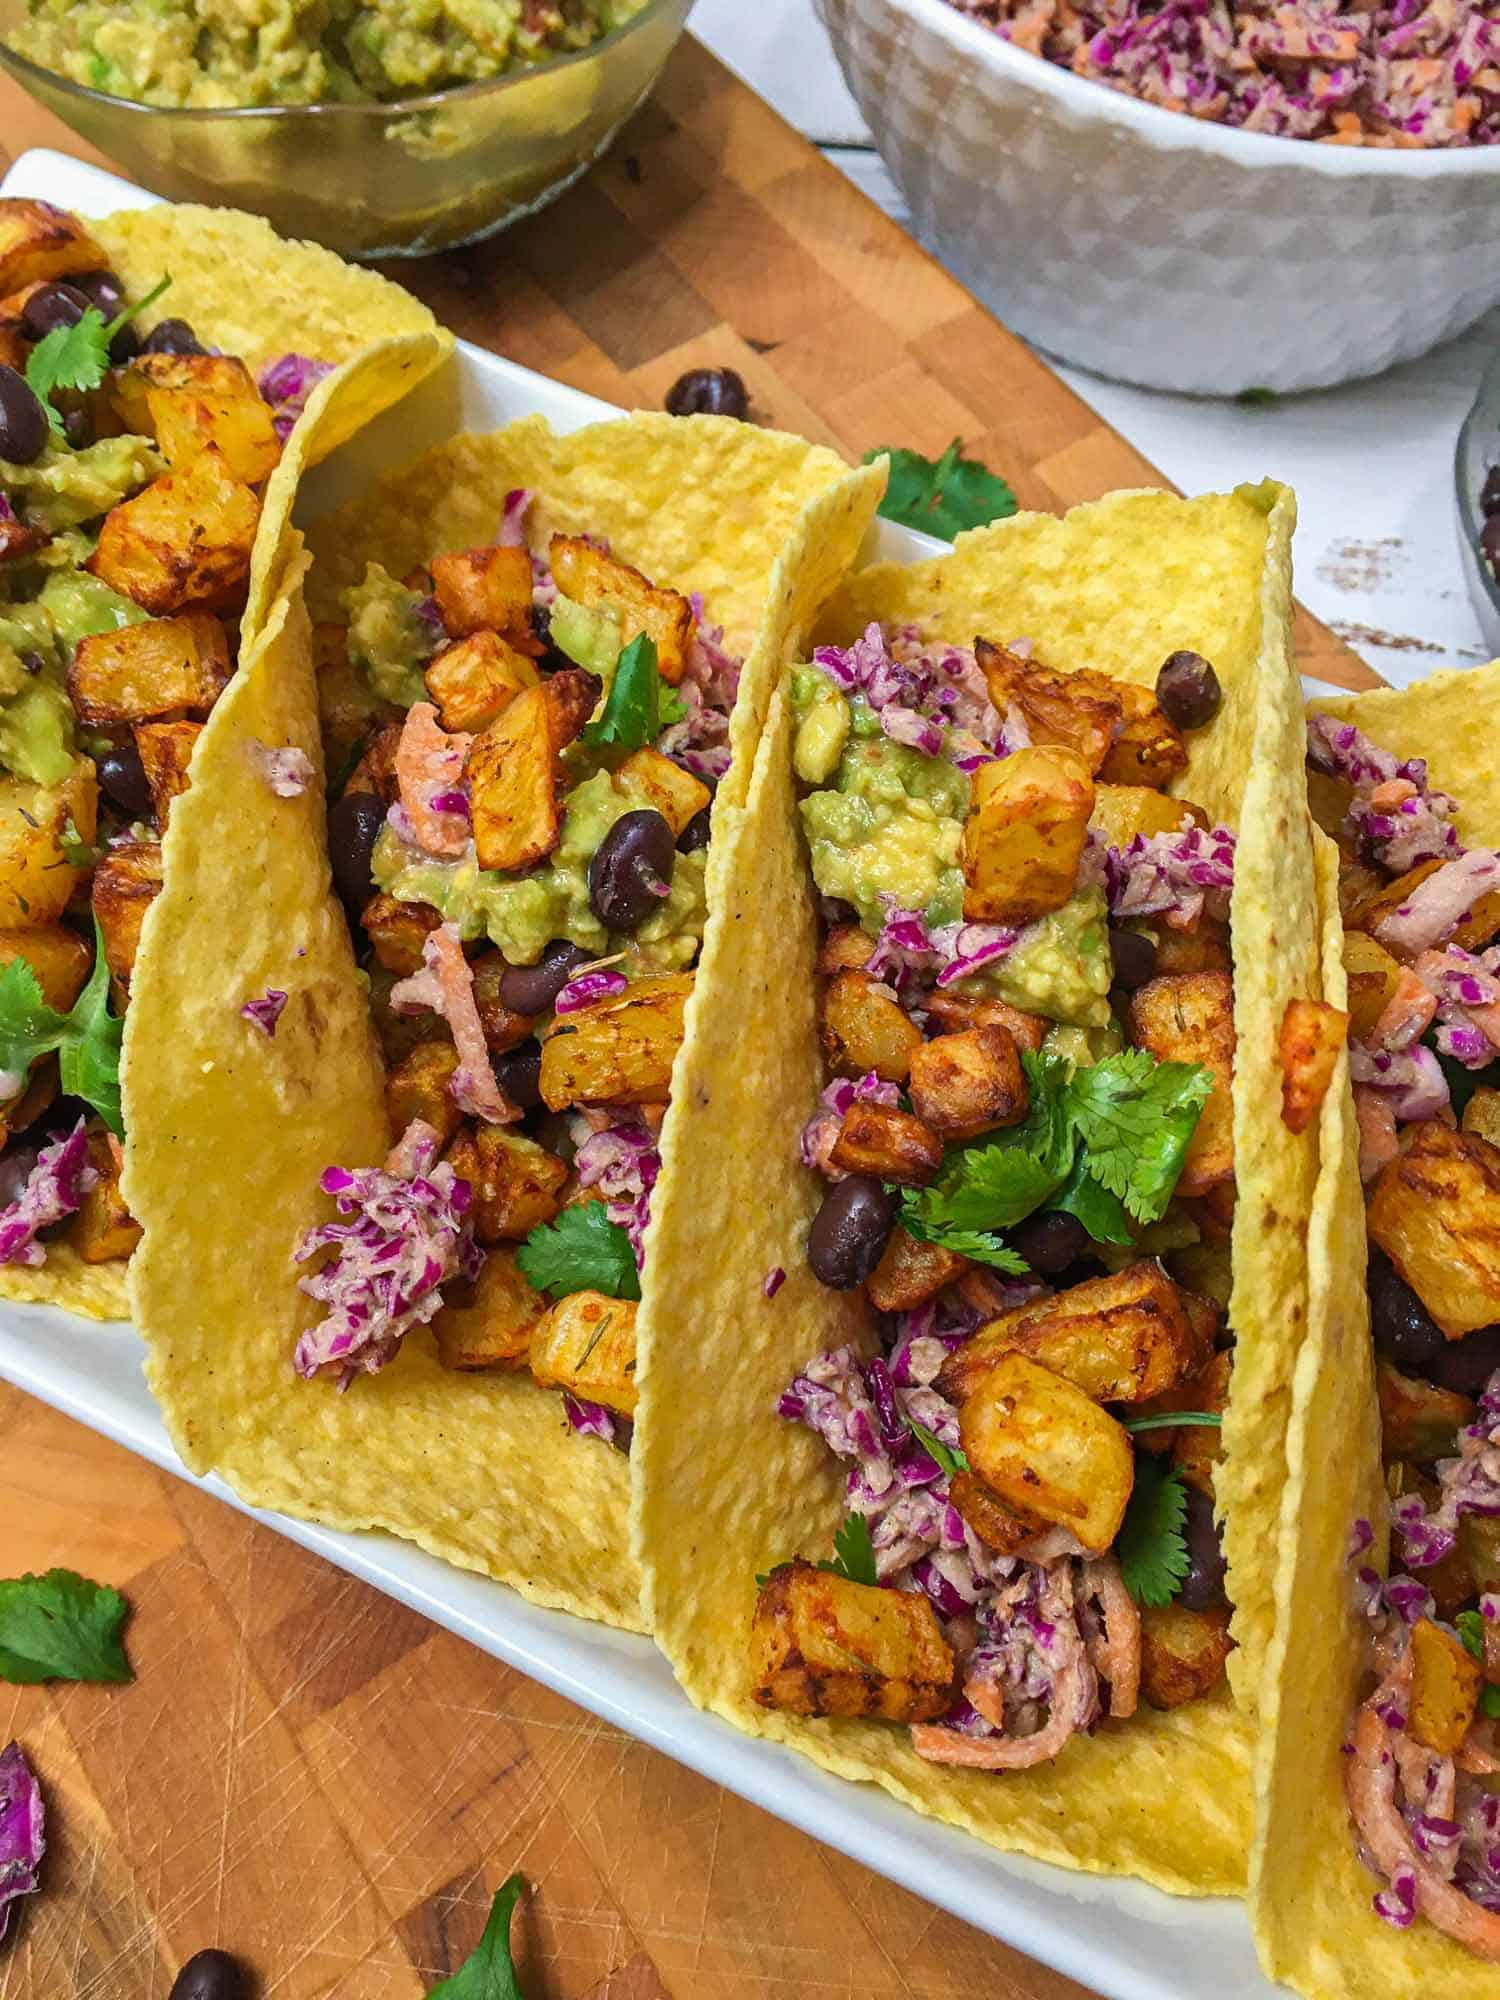 cloes up of taco filled with potato, guacamole, black beans, cilantro